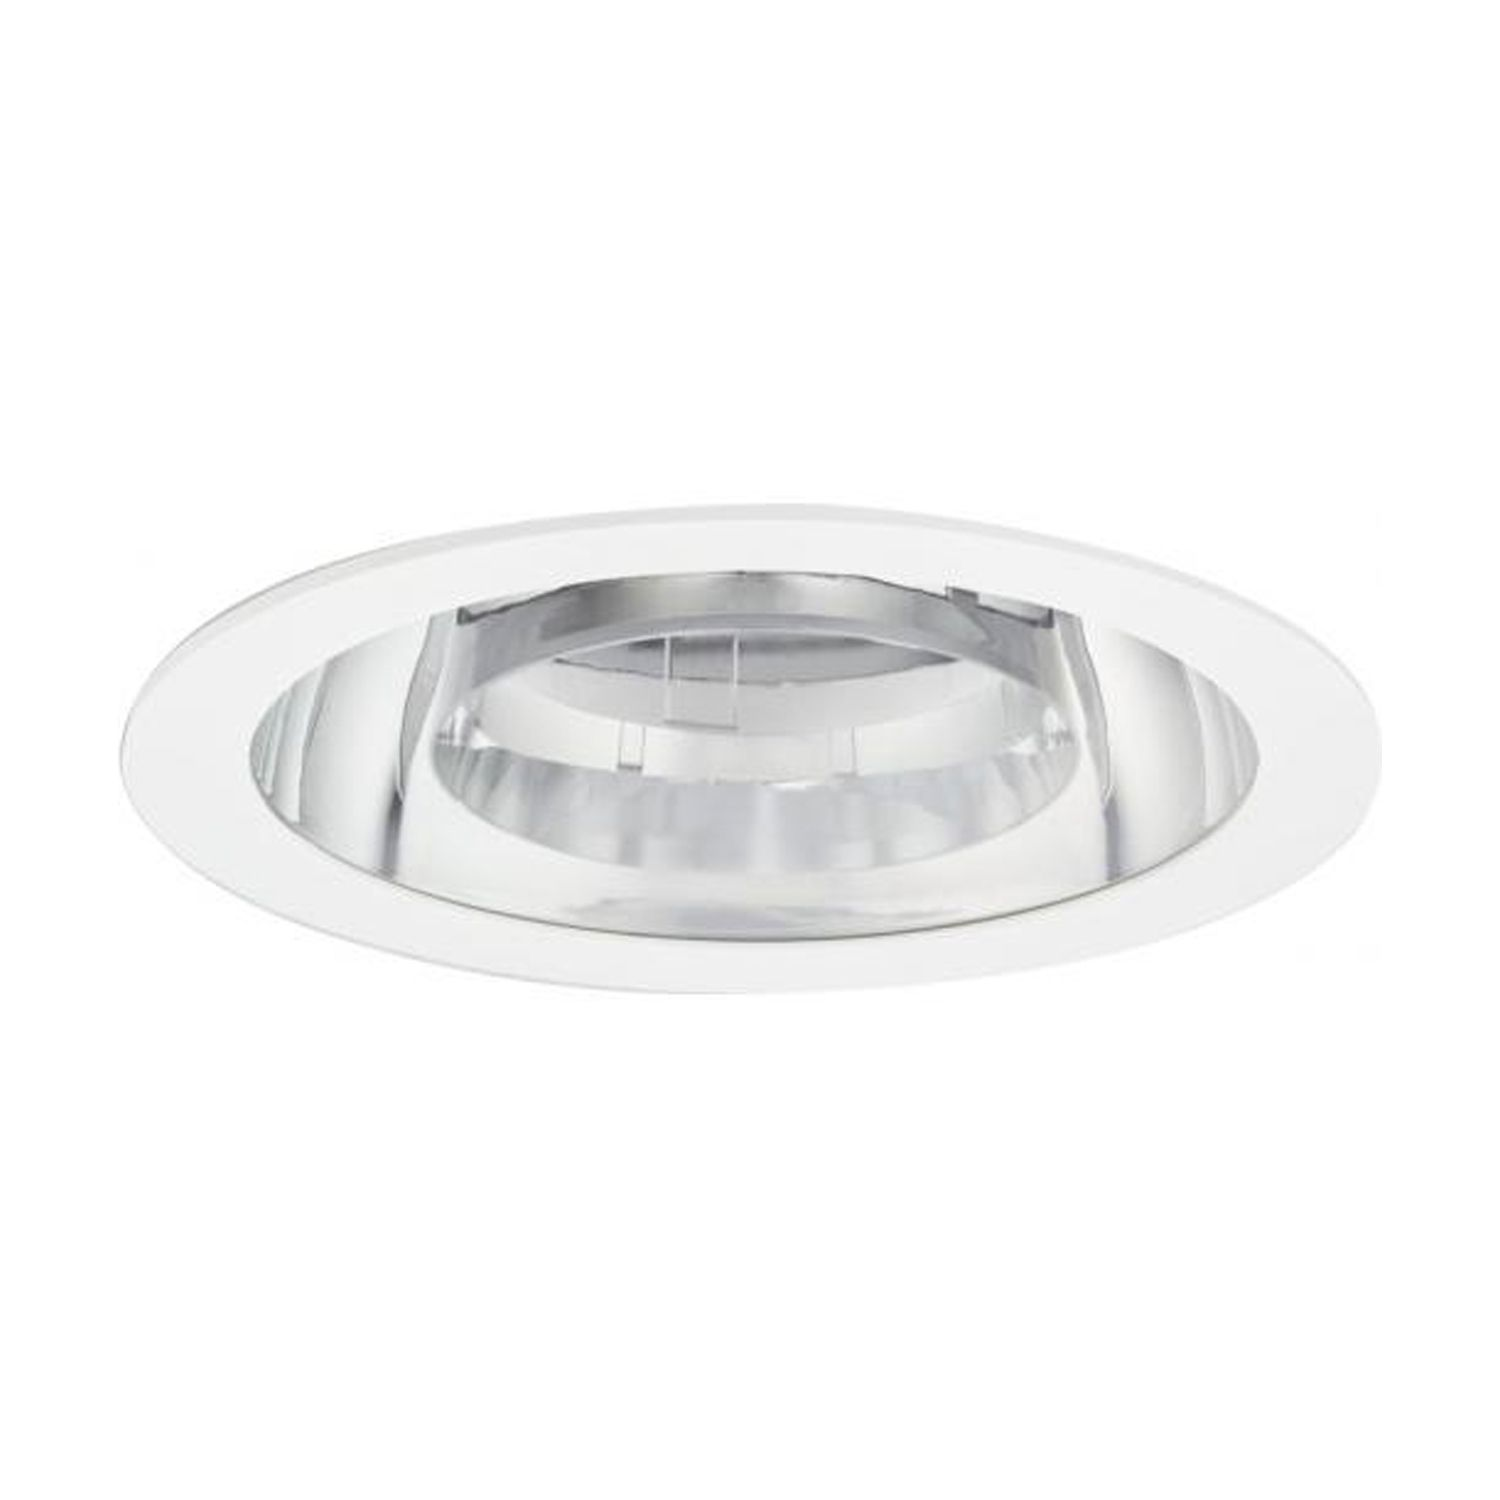 Philips GreenSpace2 DN471B 3000K 2000lm LED20S PSED-VLC-E C WH P | Dali Dimmable